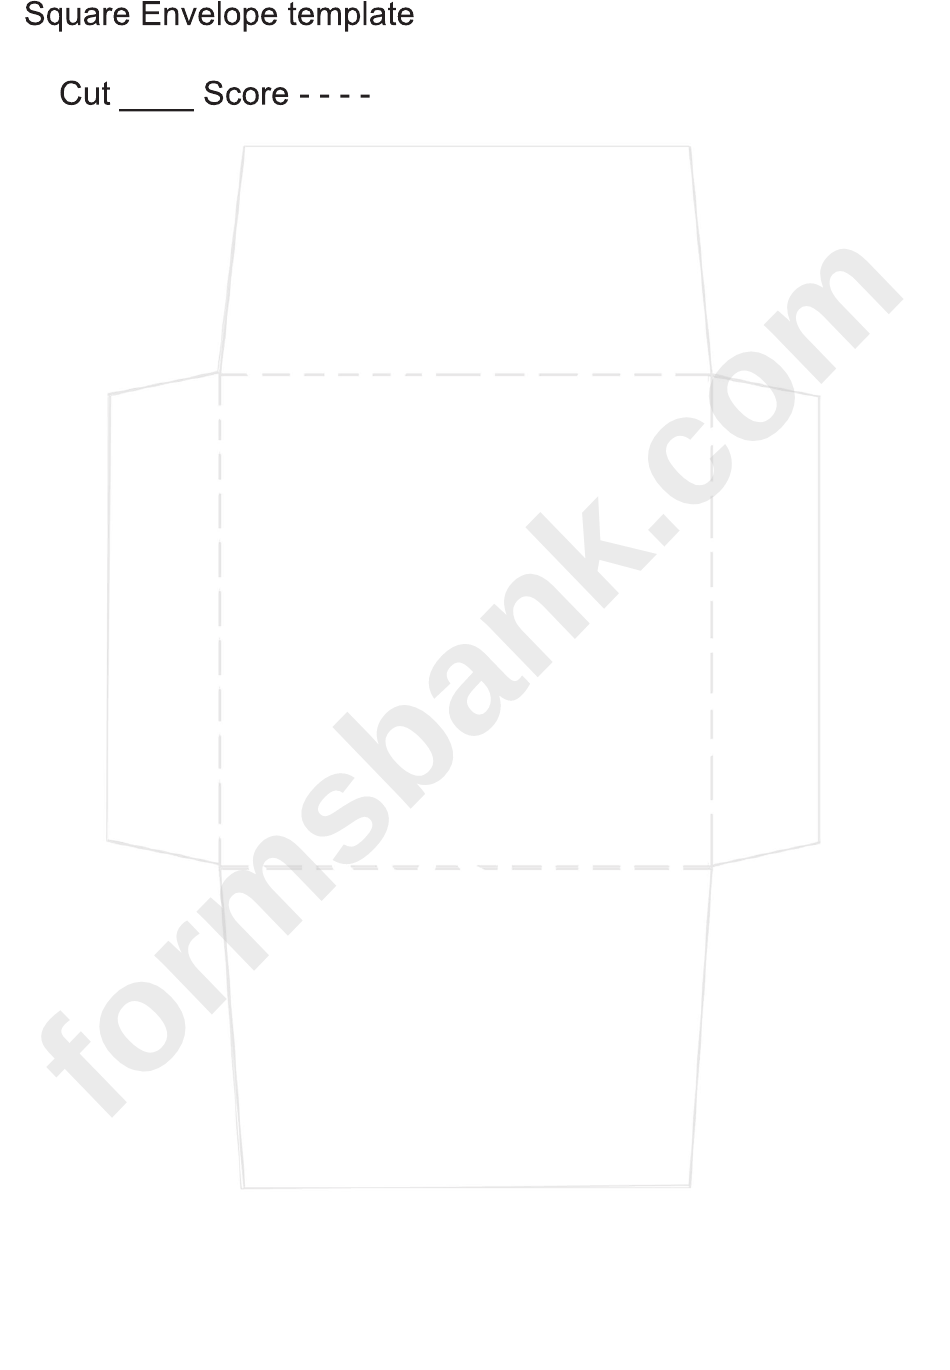 Square Envelope Template Printable Pdf Download